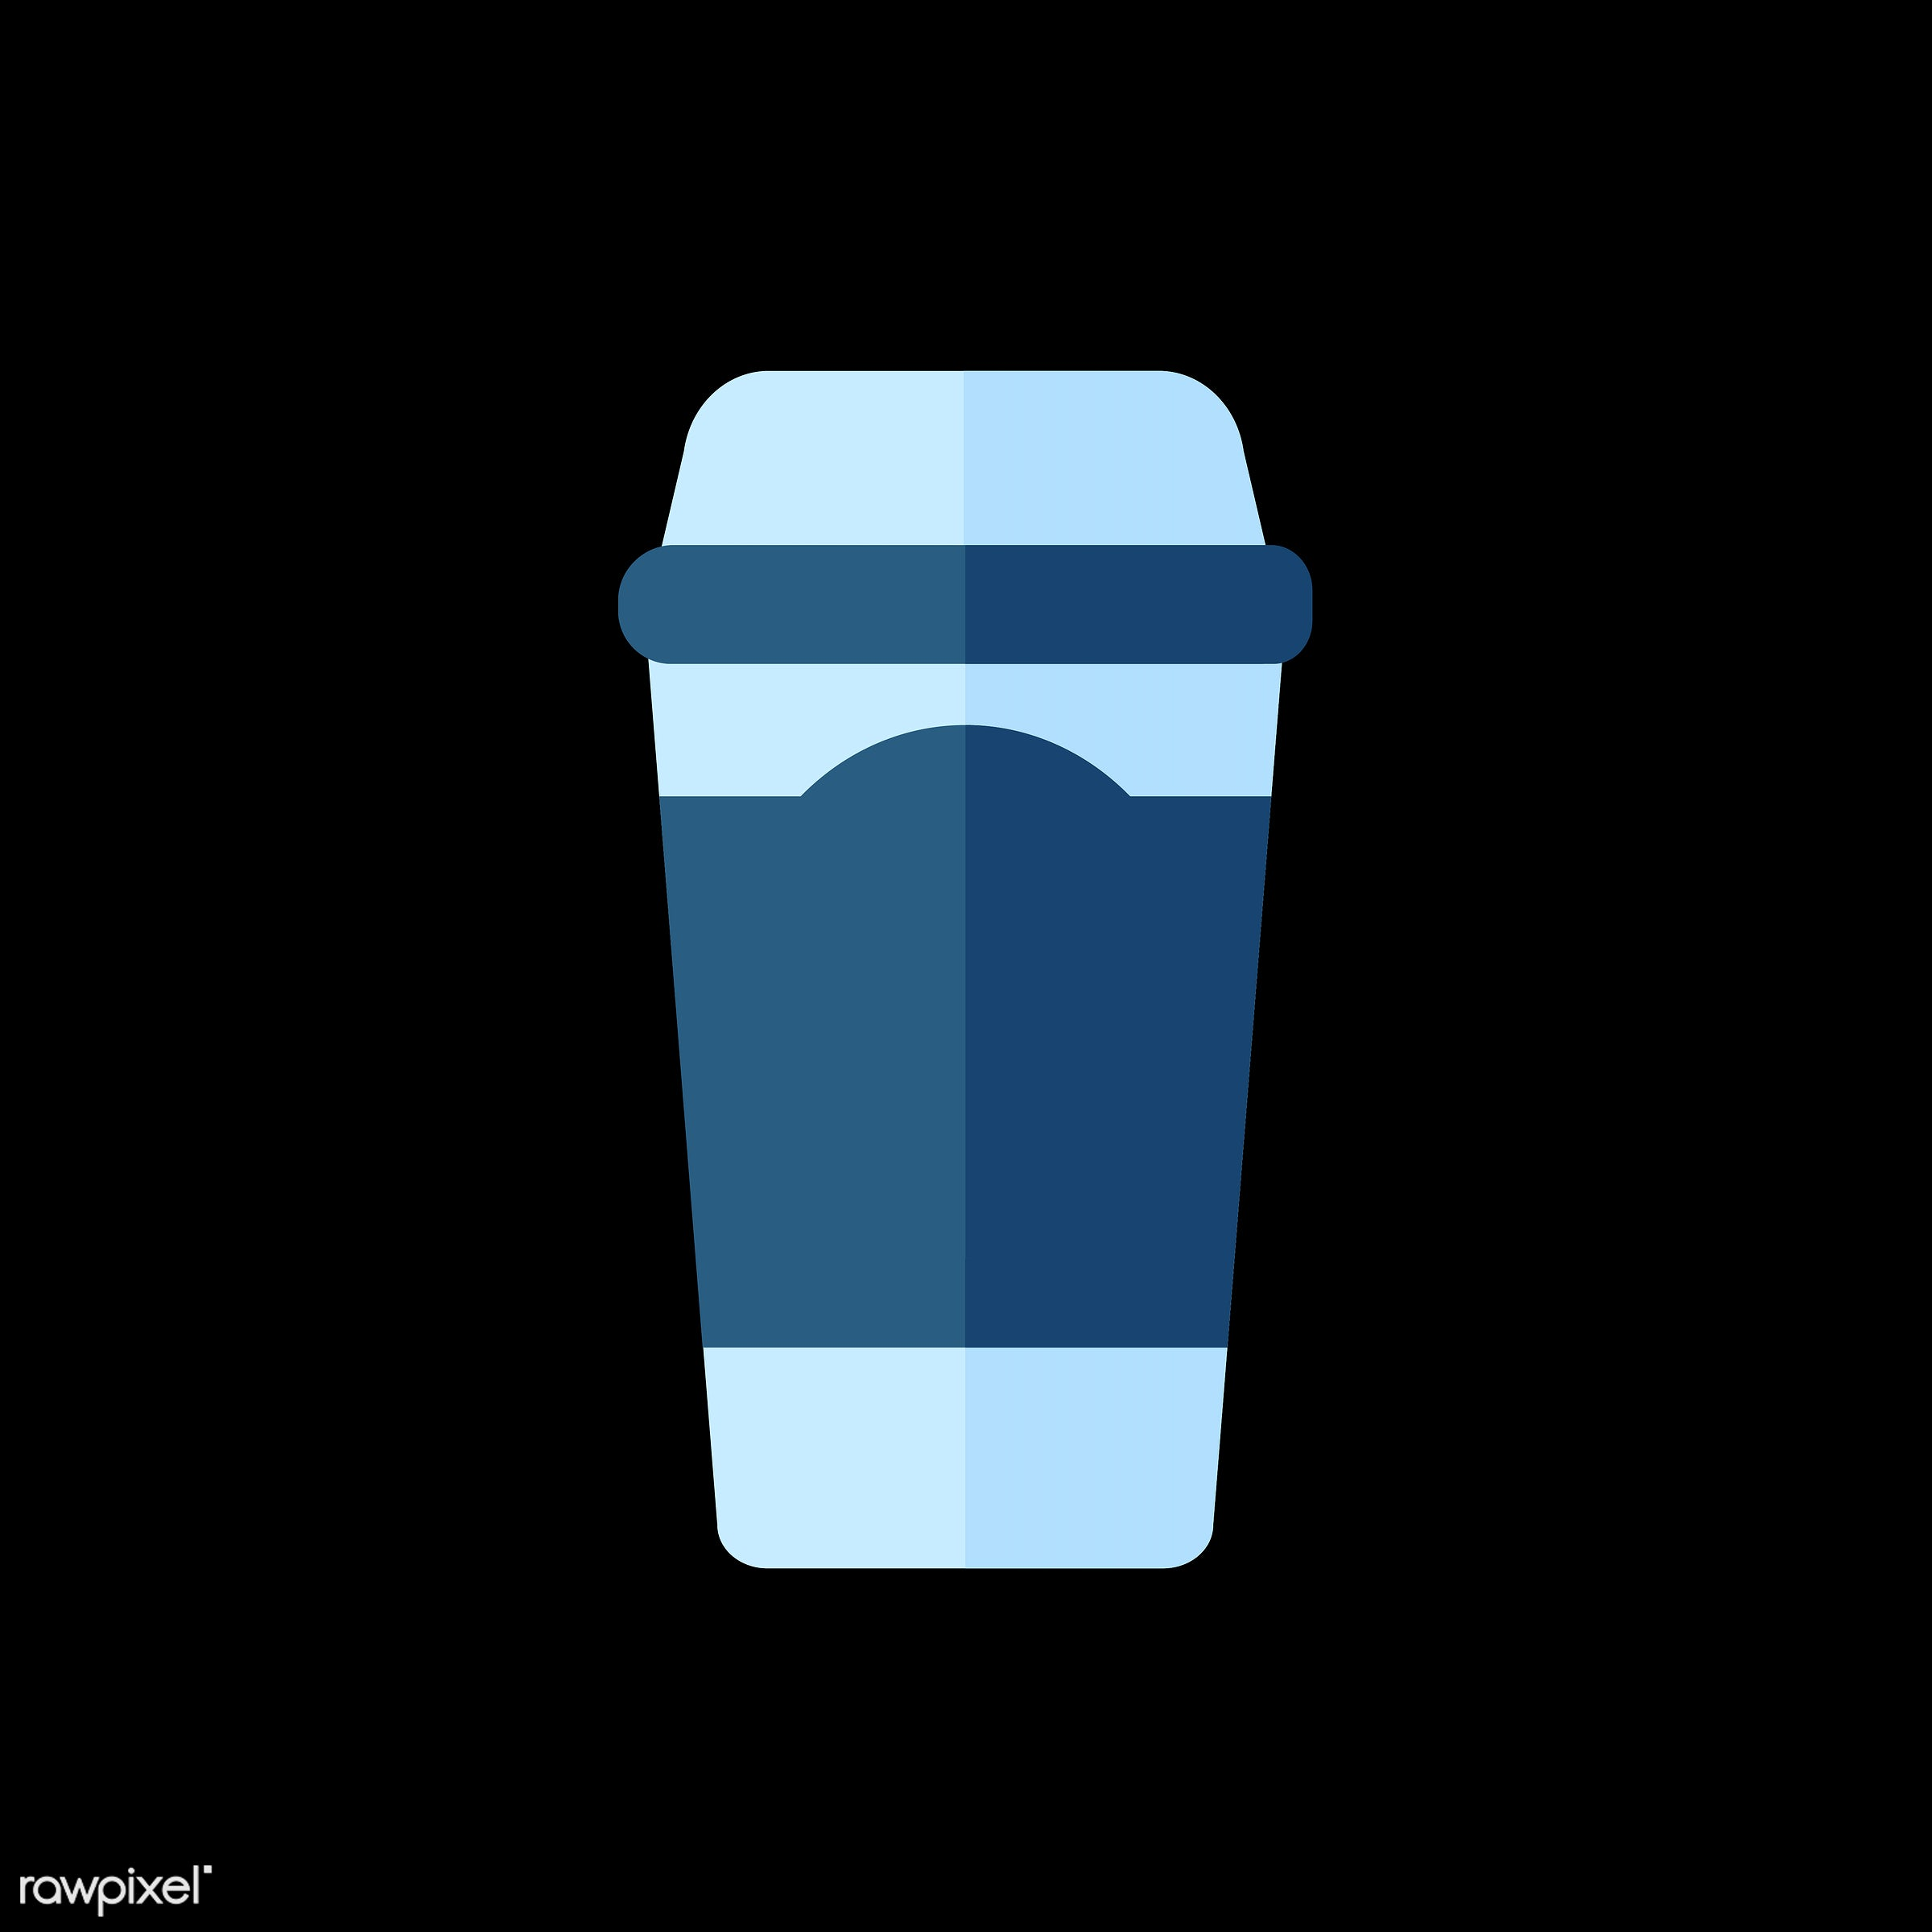 vector, graphic, illustration, icon, symbol, colorful, cute, drink, beverage, water, blue, coffee, coffee cup, coffee mug,...